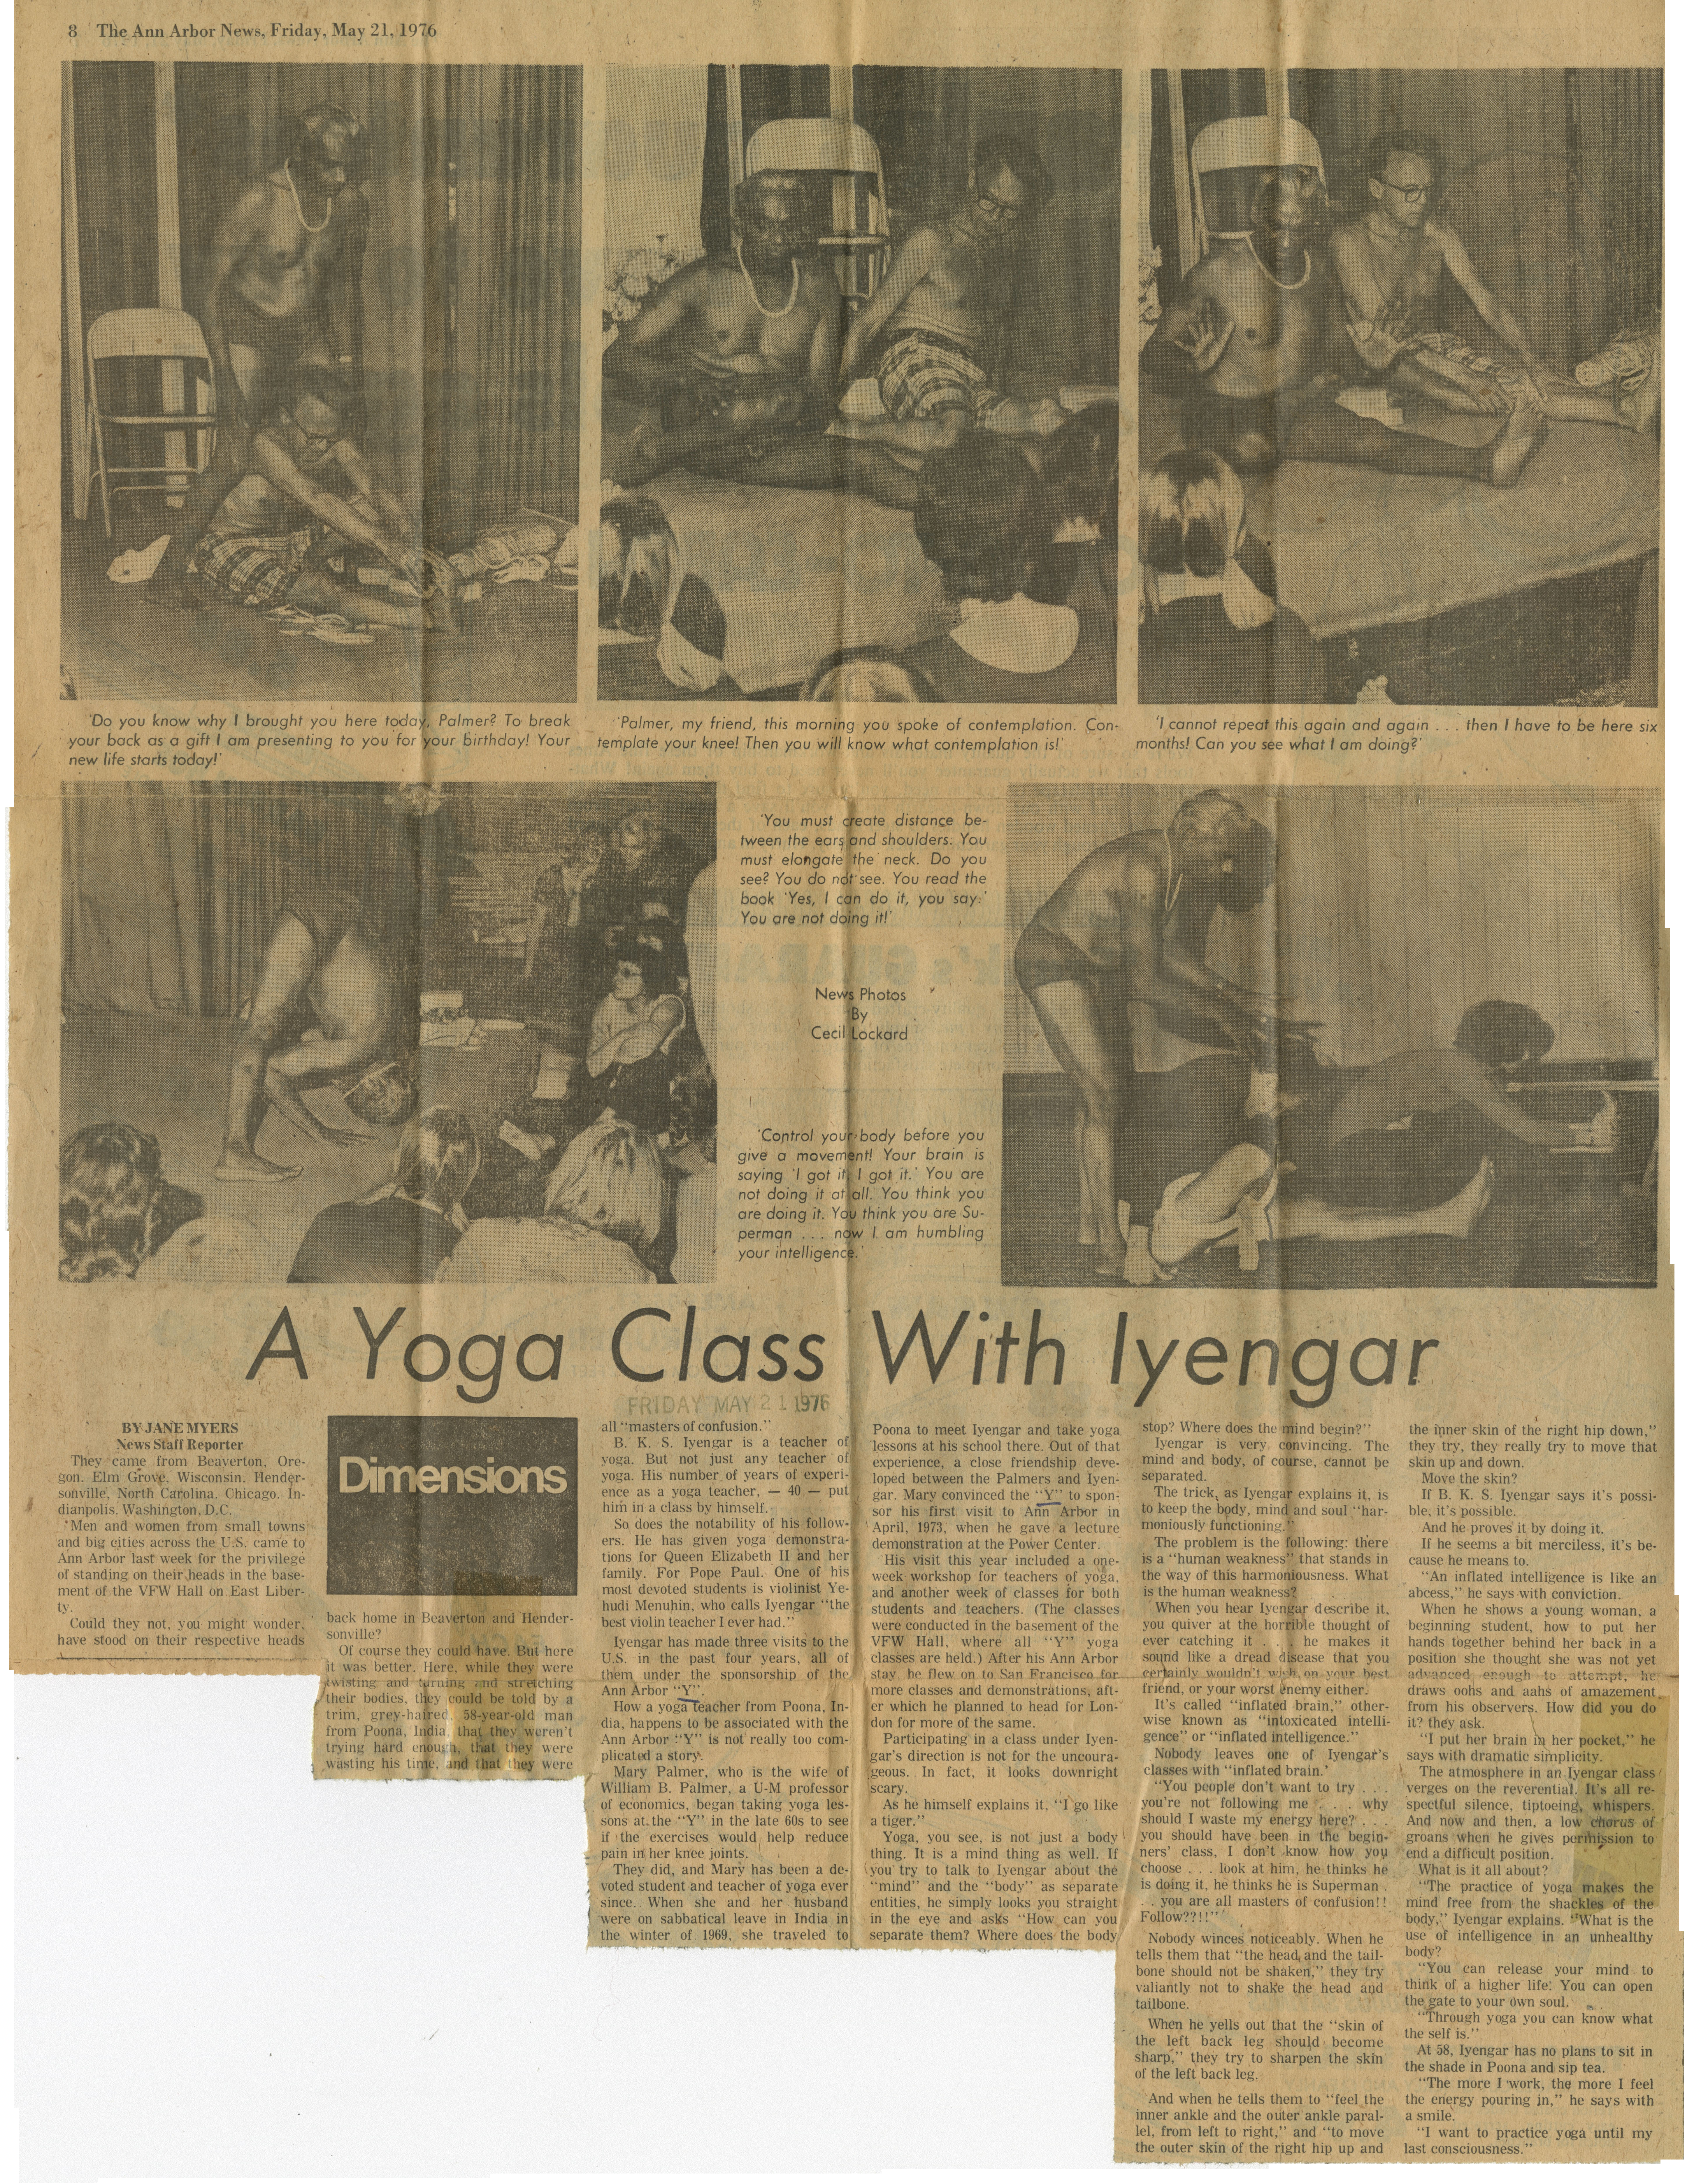 a yoga class with iyengar image